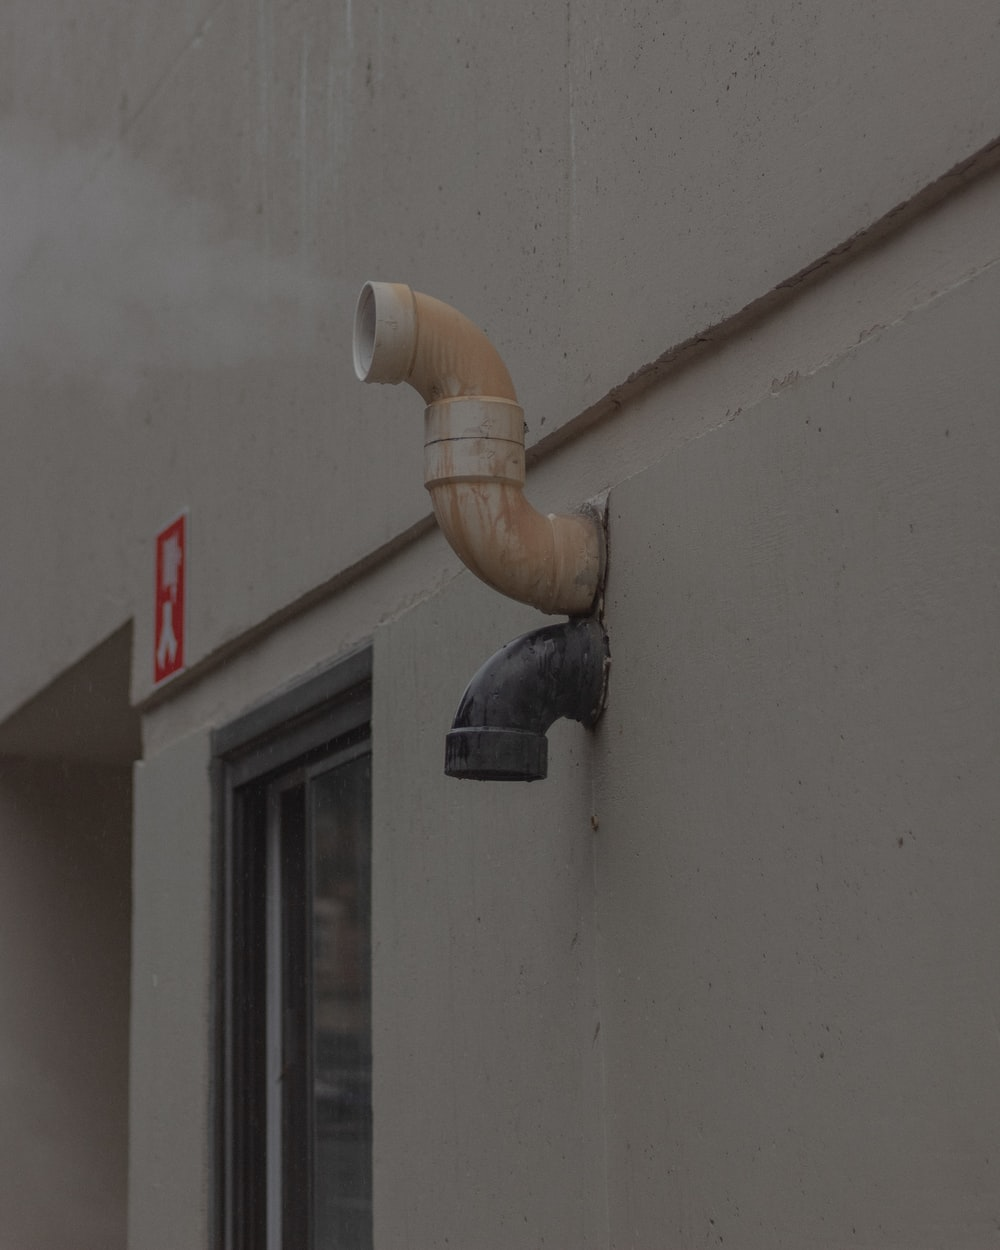 white and brown pipe mounted on white wall